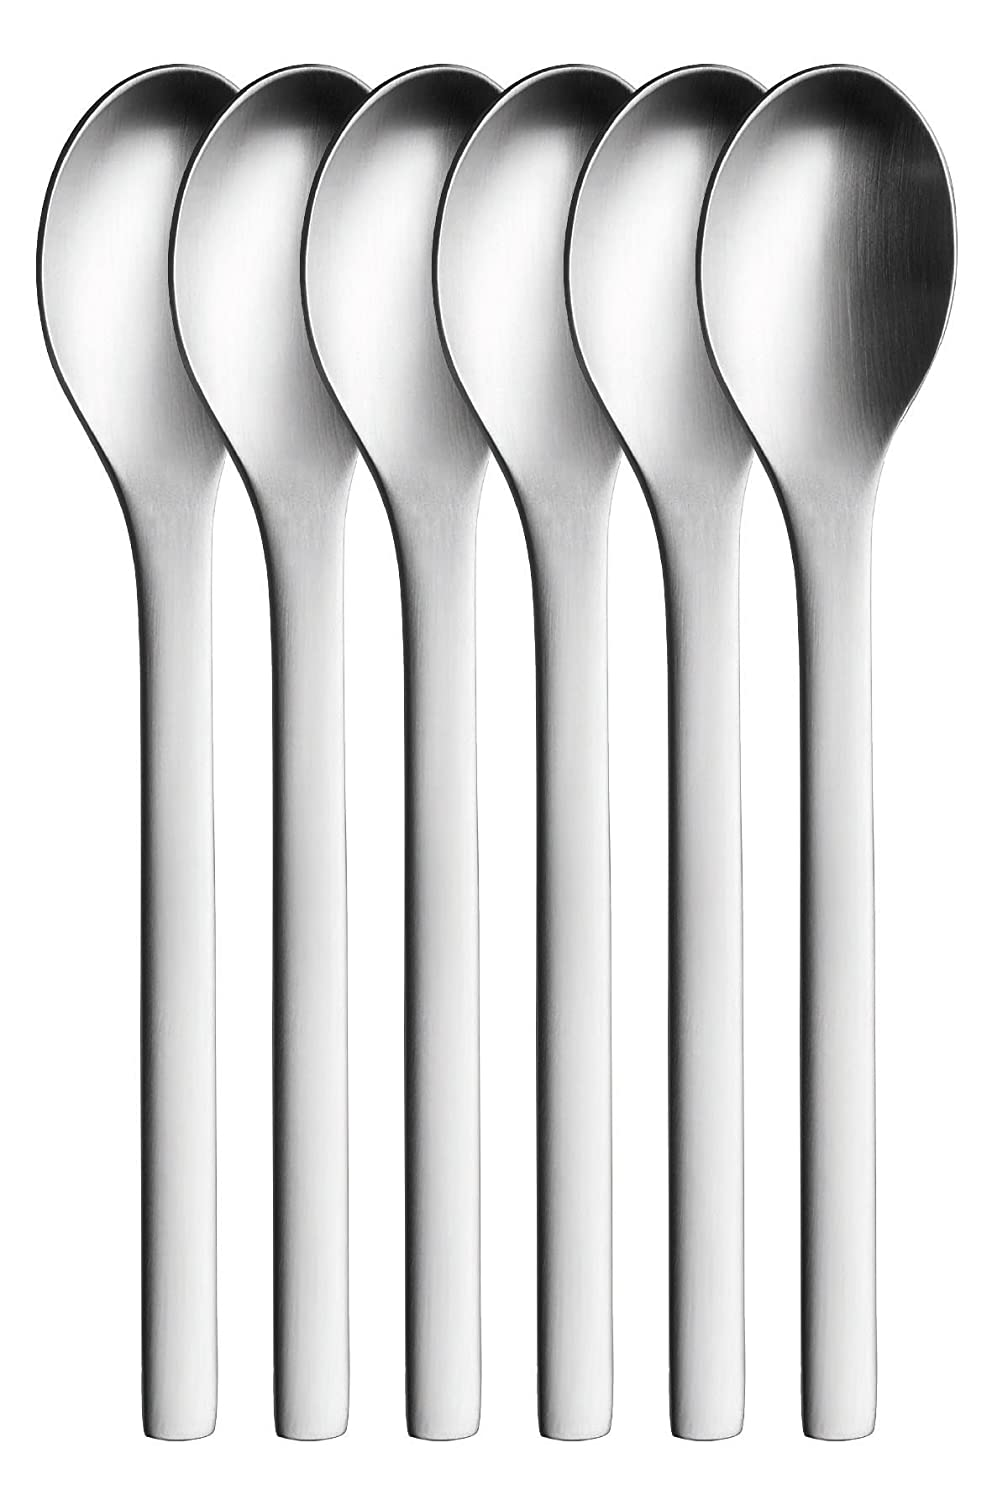 Puresigns 3010613 Art. Code-3010613, One Extra Coffee Spoon Set, 6 Pieces